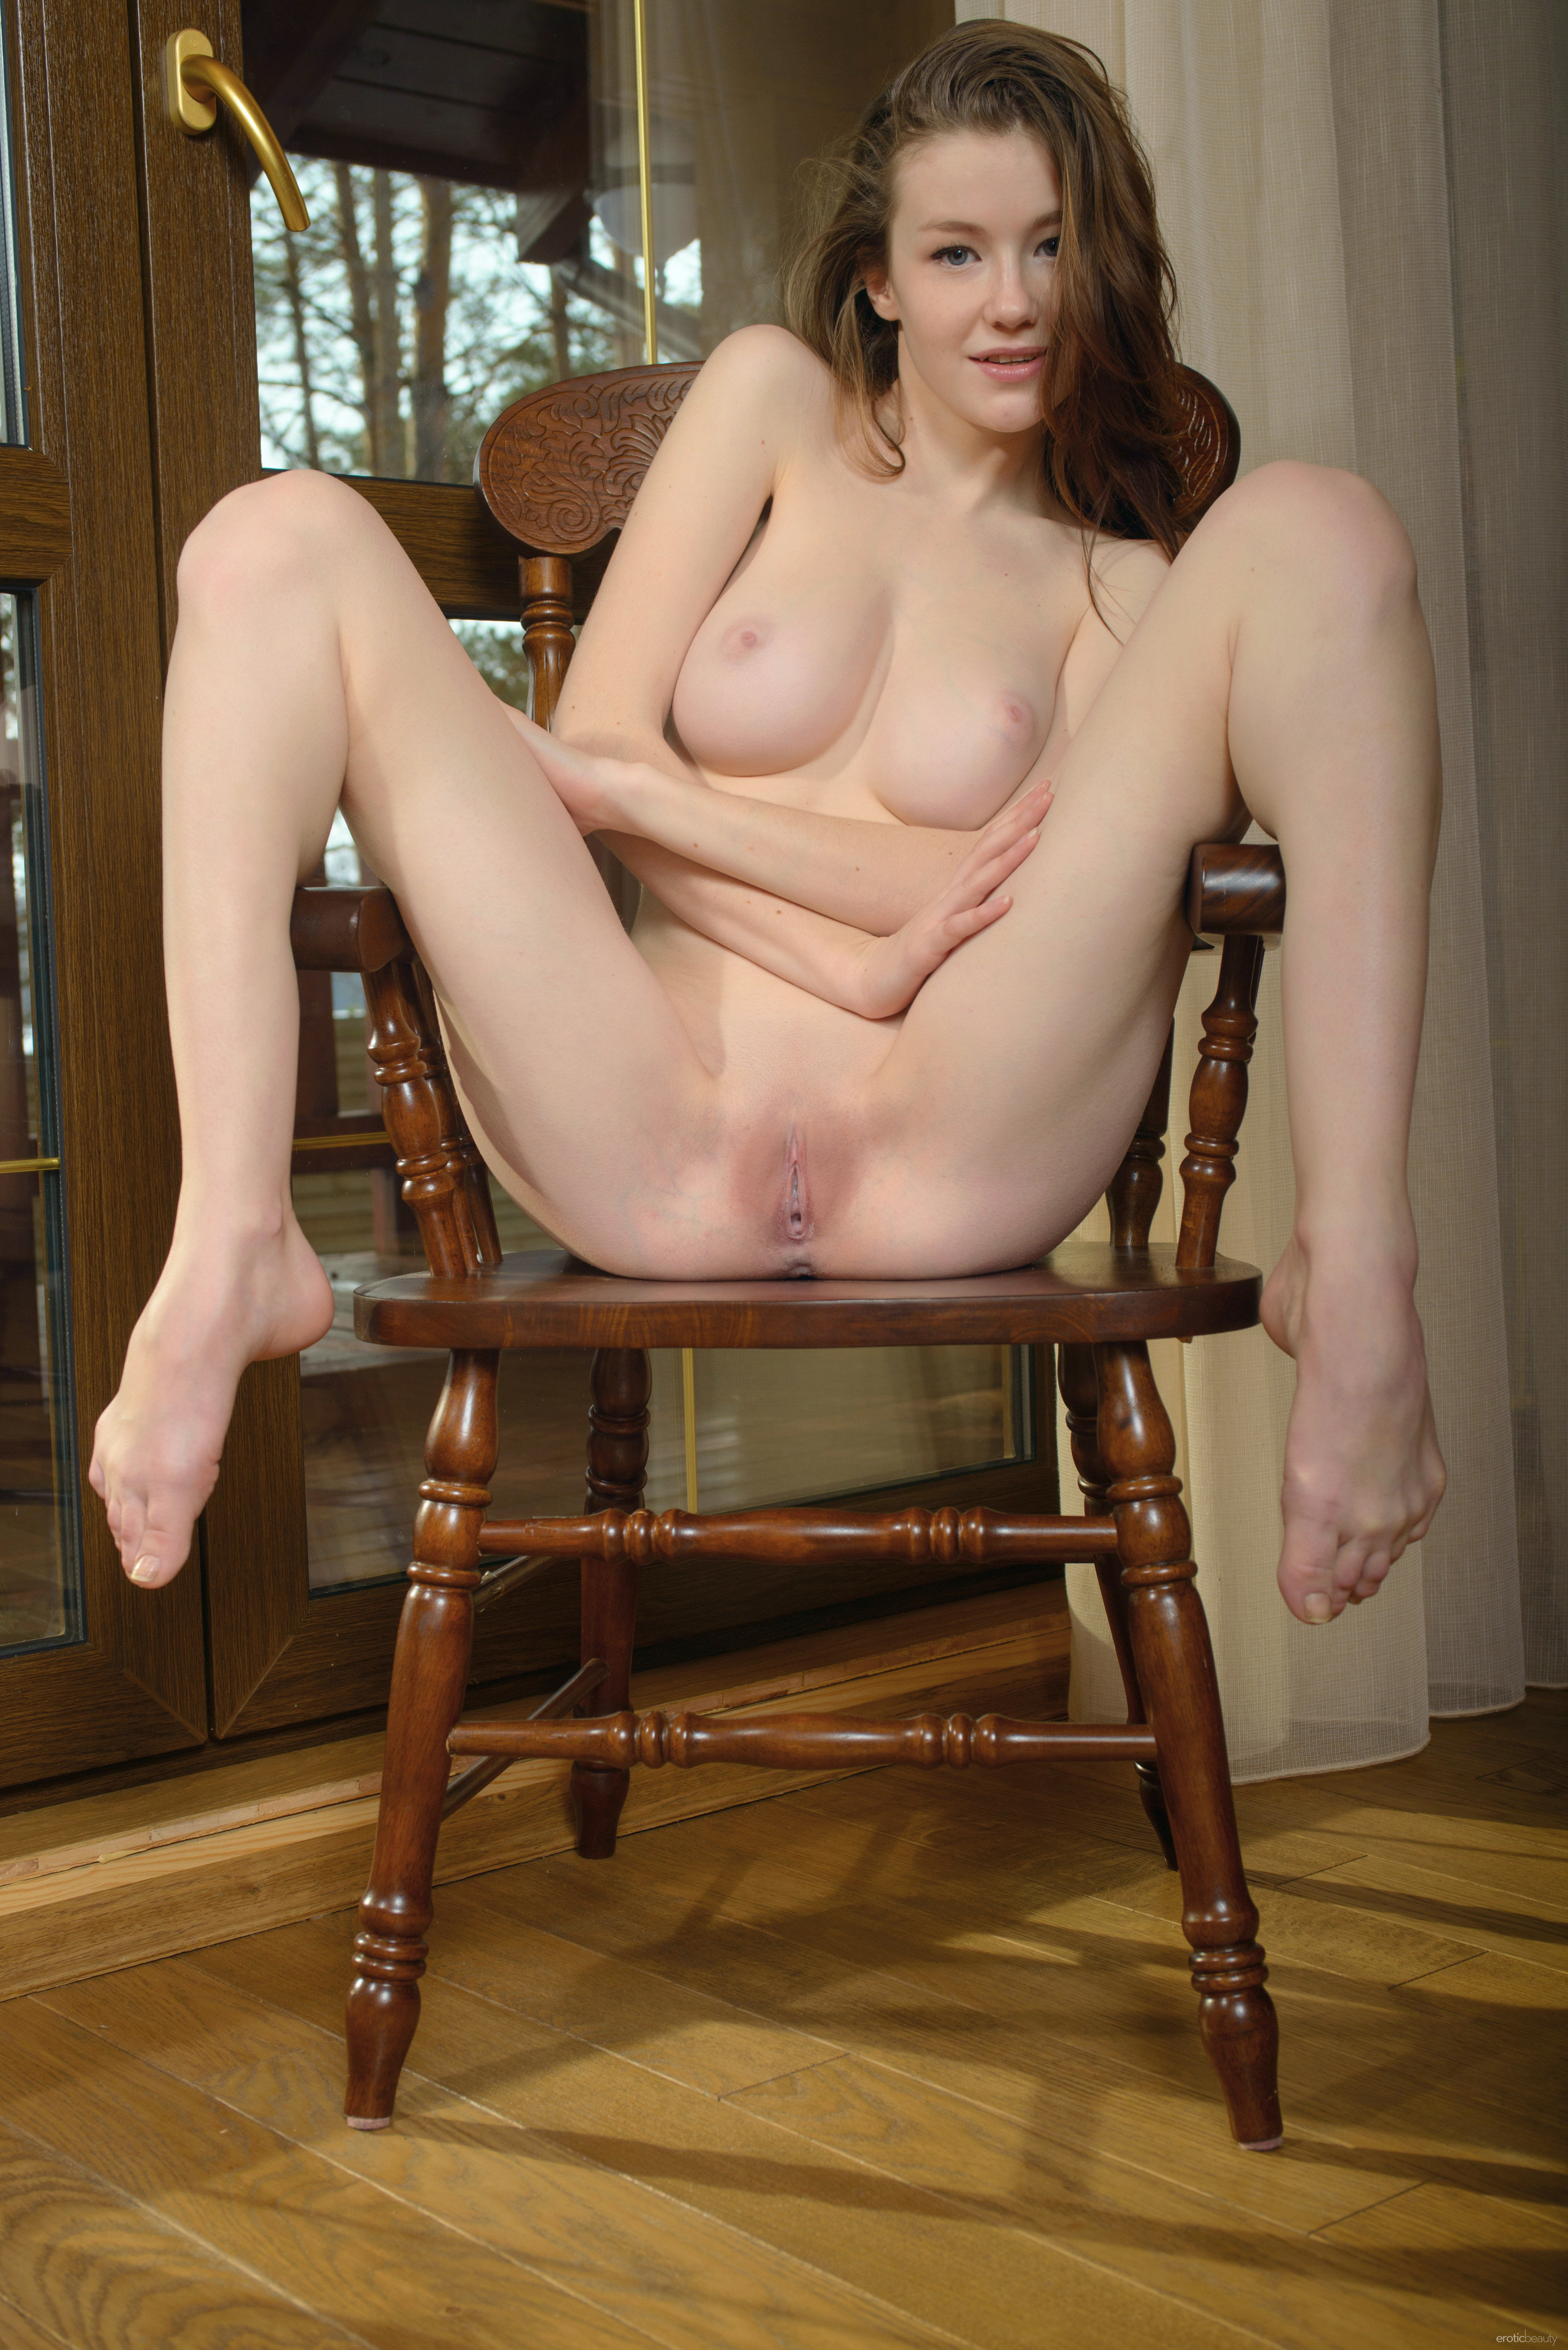 extreme creampie free videos watch download and enjoy